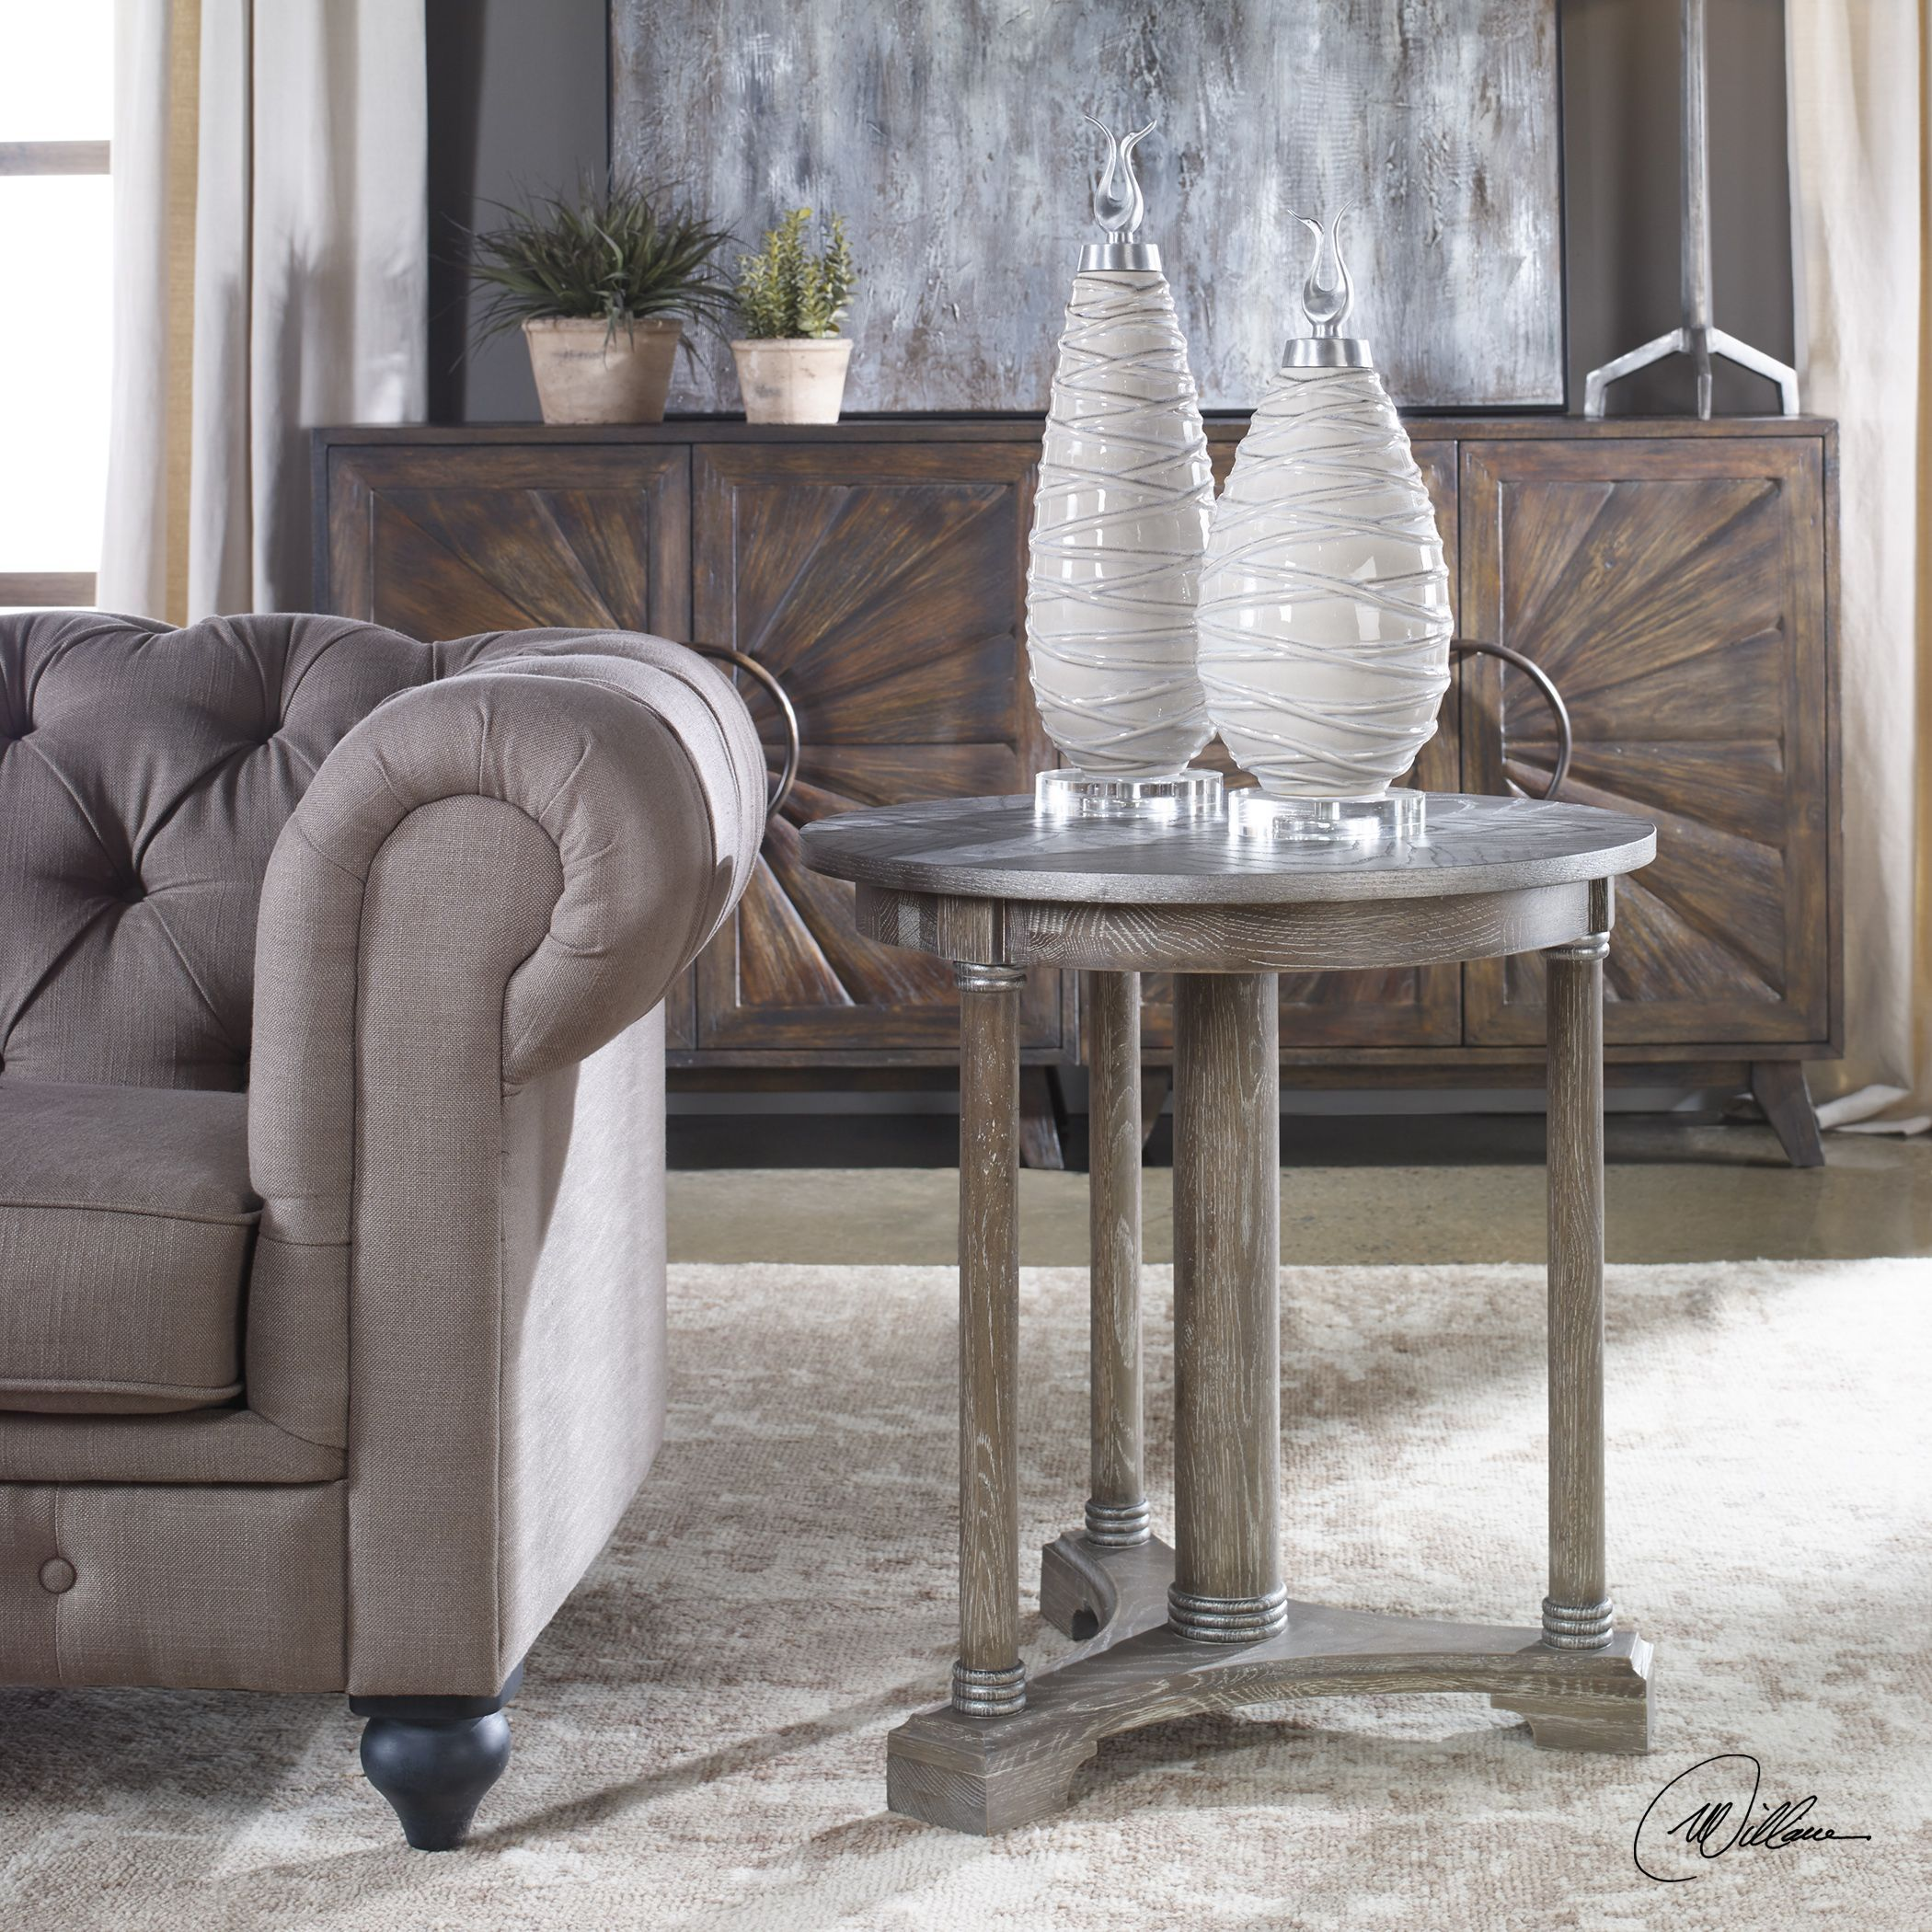 Thema Farmhouse Weathered Gray Oak Round Accent Table